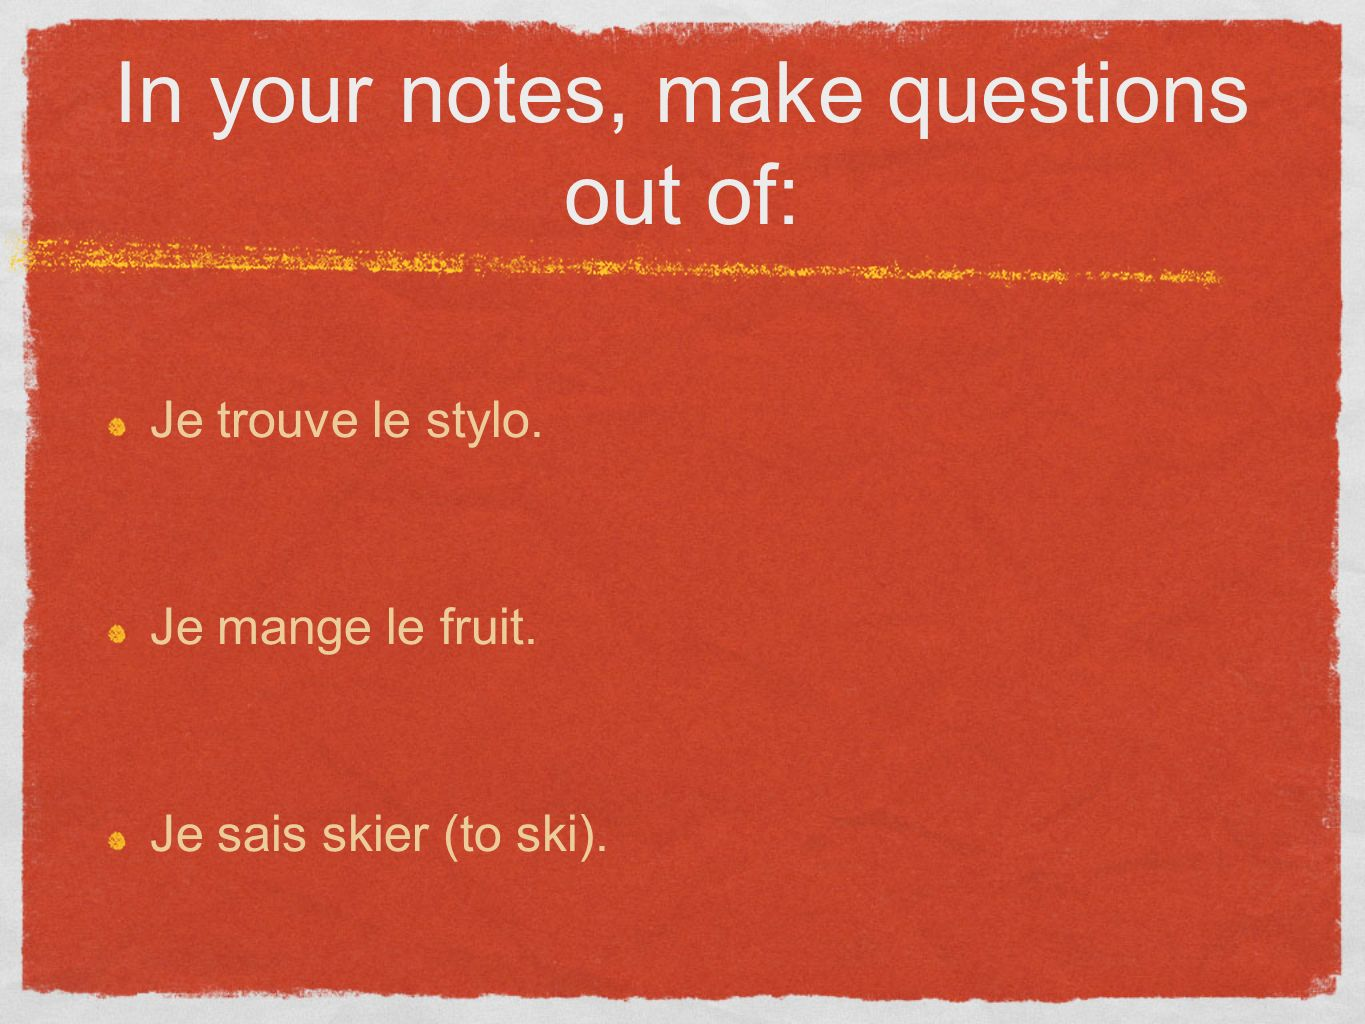 In your notes, make questions out of: Je trouve le stylo.